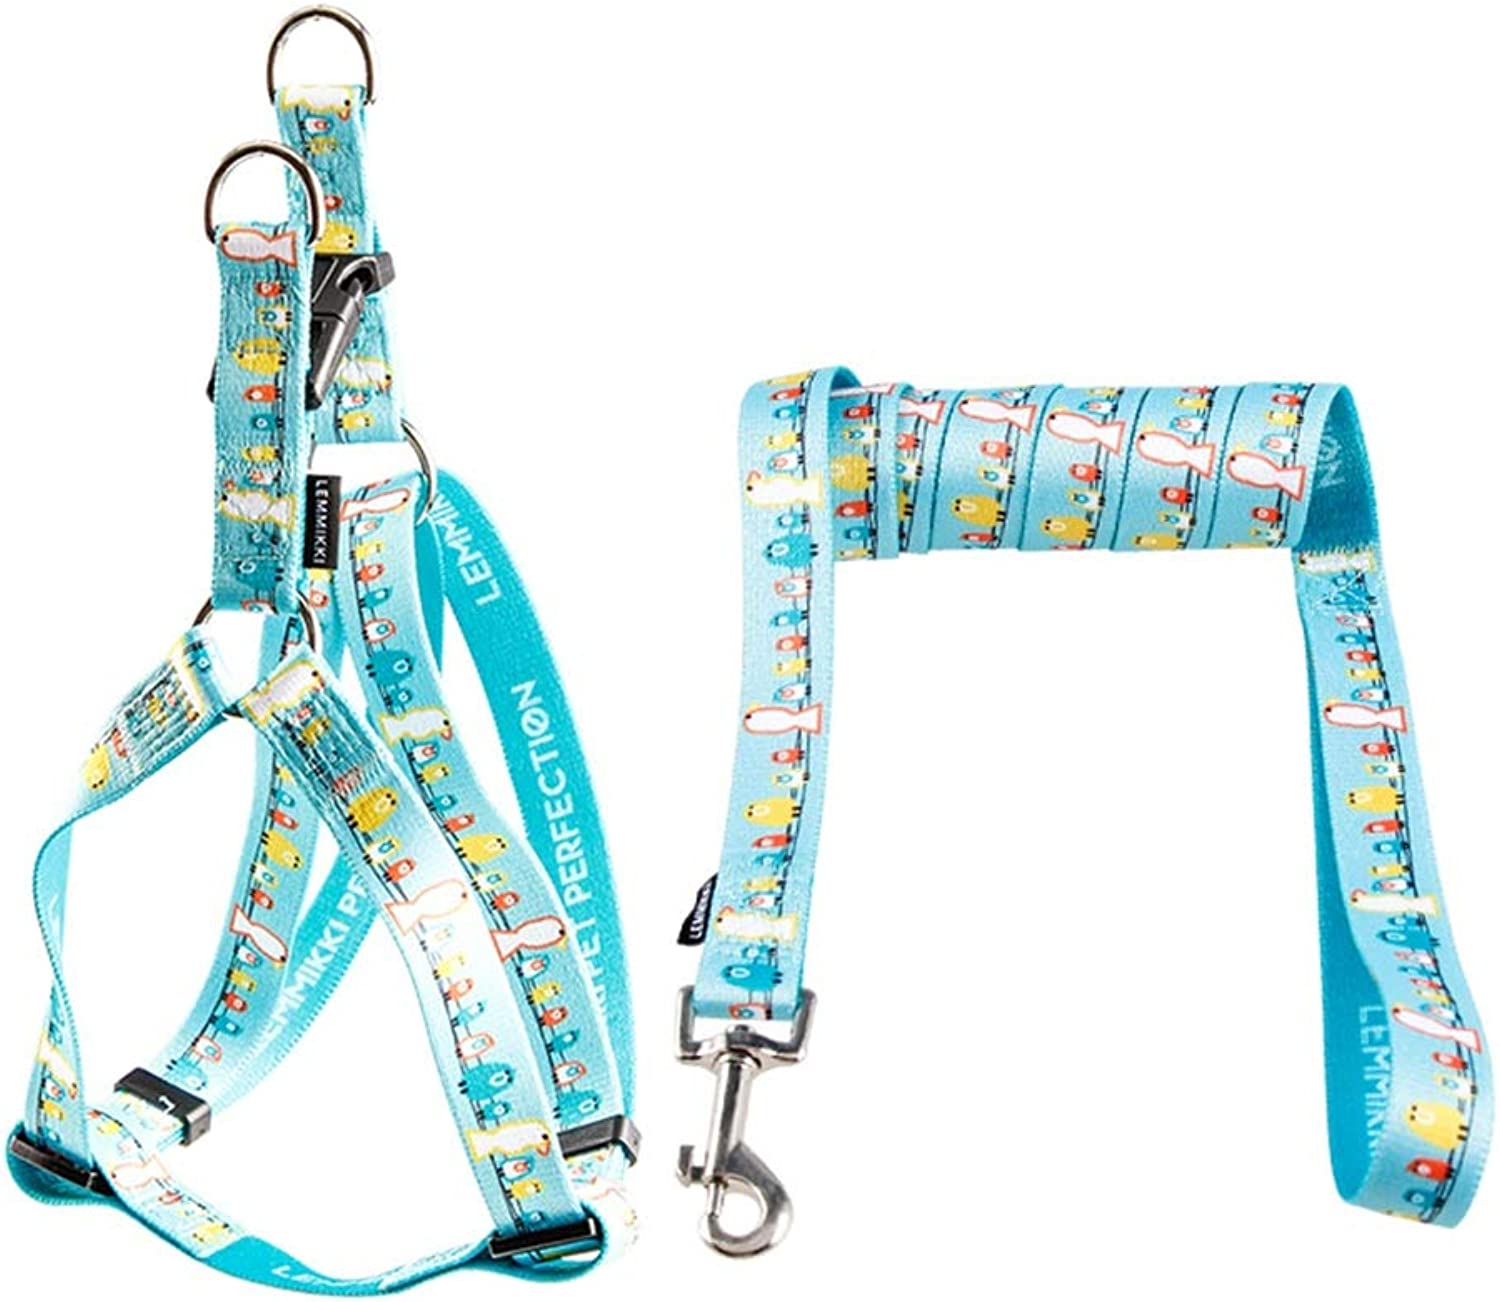 Dog Leash, Dog Lead Set Nylon Rope Lead & Adjustable Harness for Small Medium Large Dogs Walking Hiking TwoPiece Suit Dogs Leash (color    1, Size   XS)